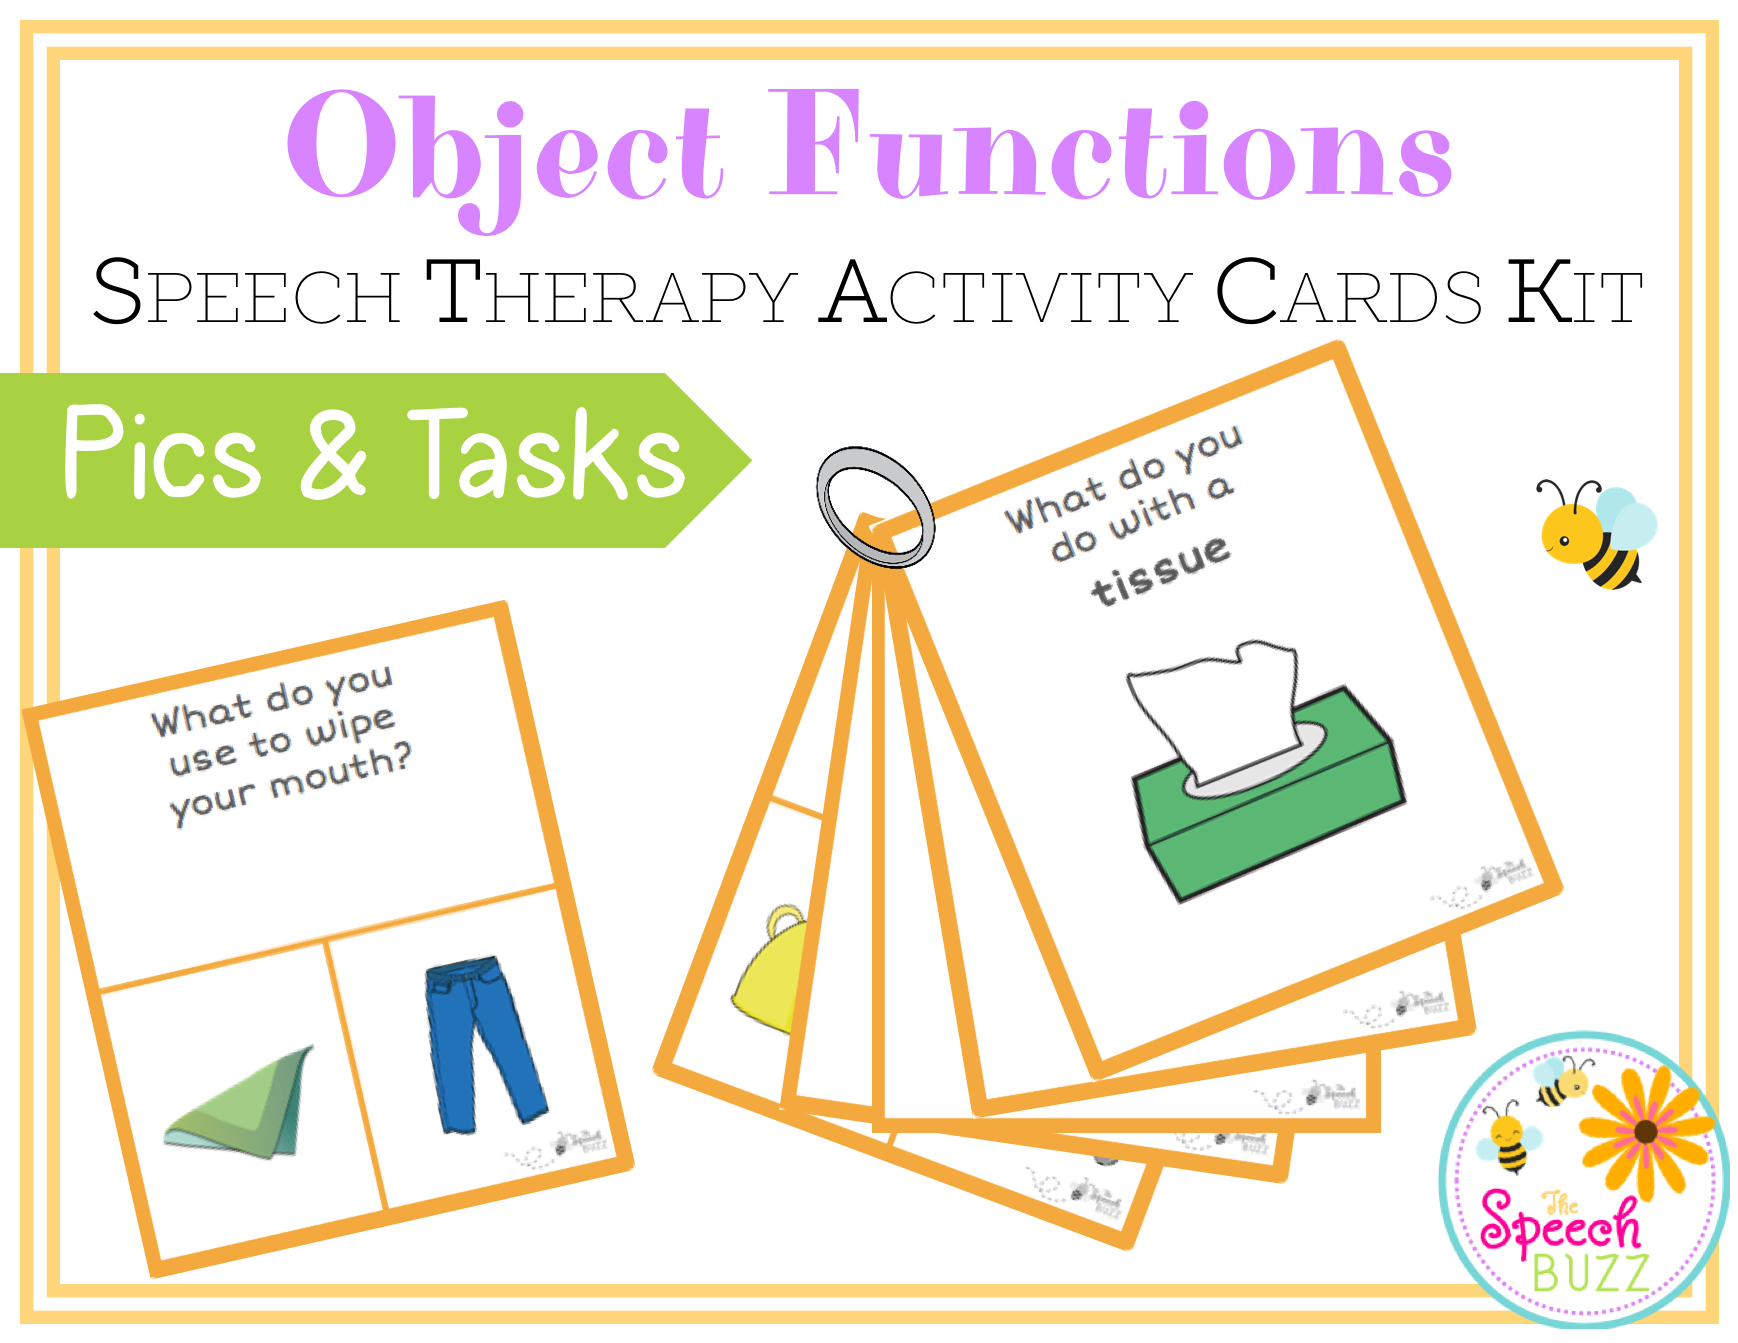 Object Functions Cards Stack